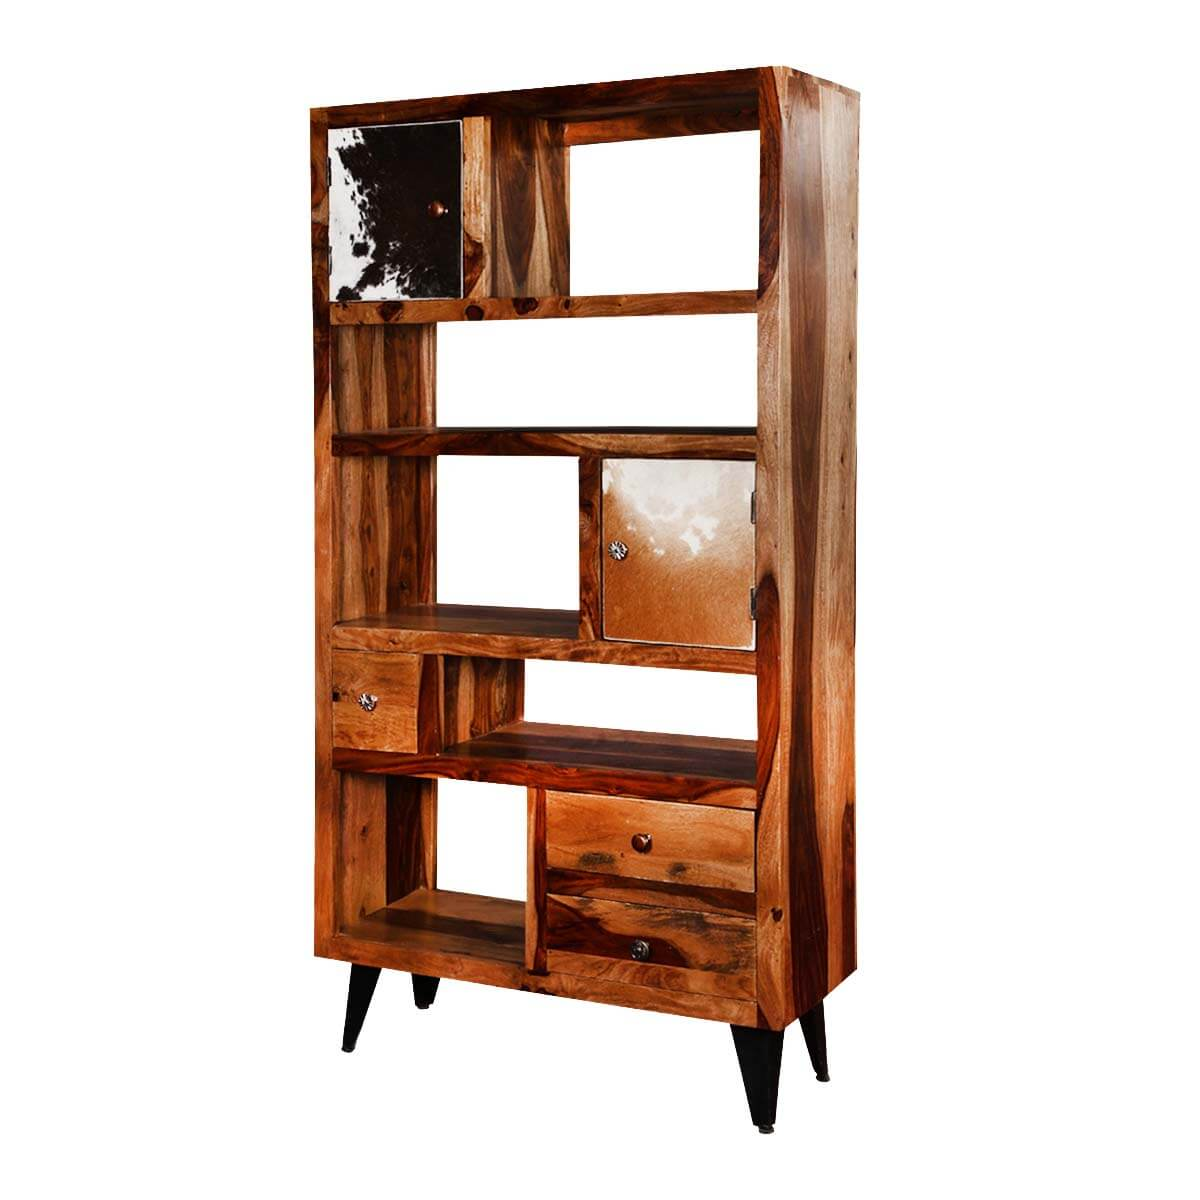 "California Exquisite 68"" Accent Display Storage Rack with Drawers"